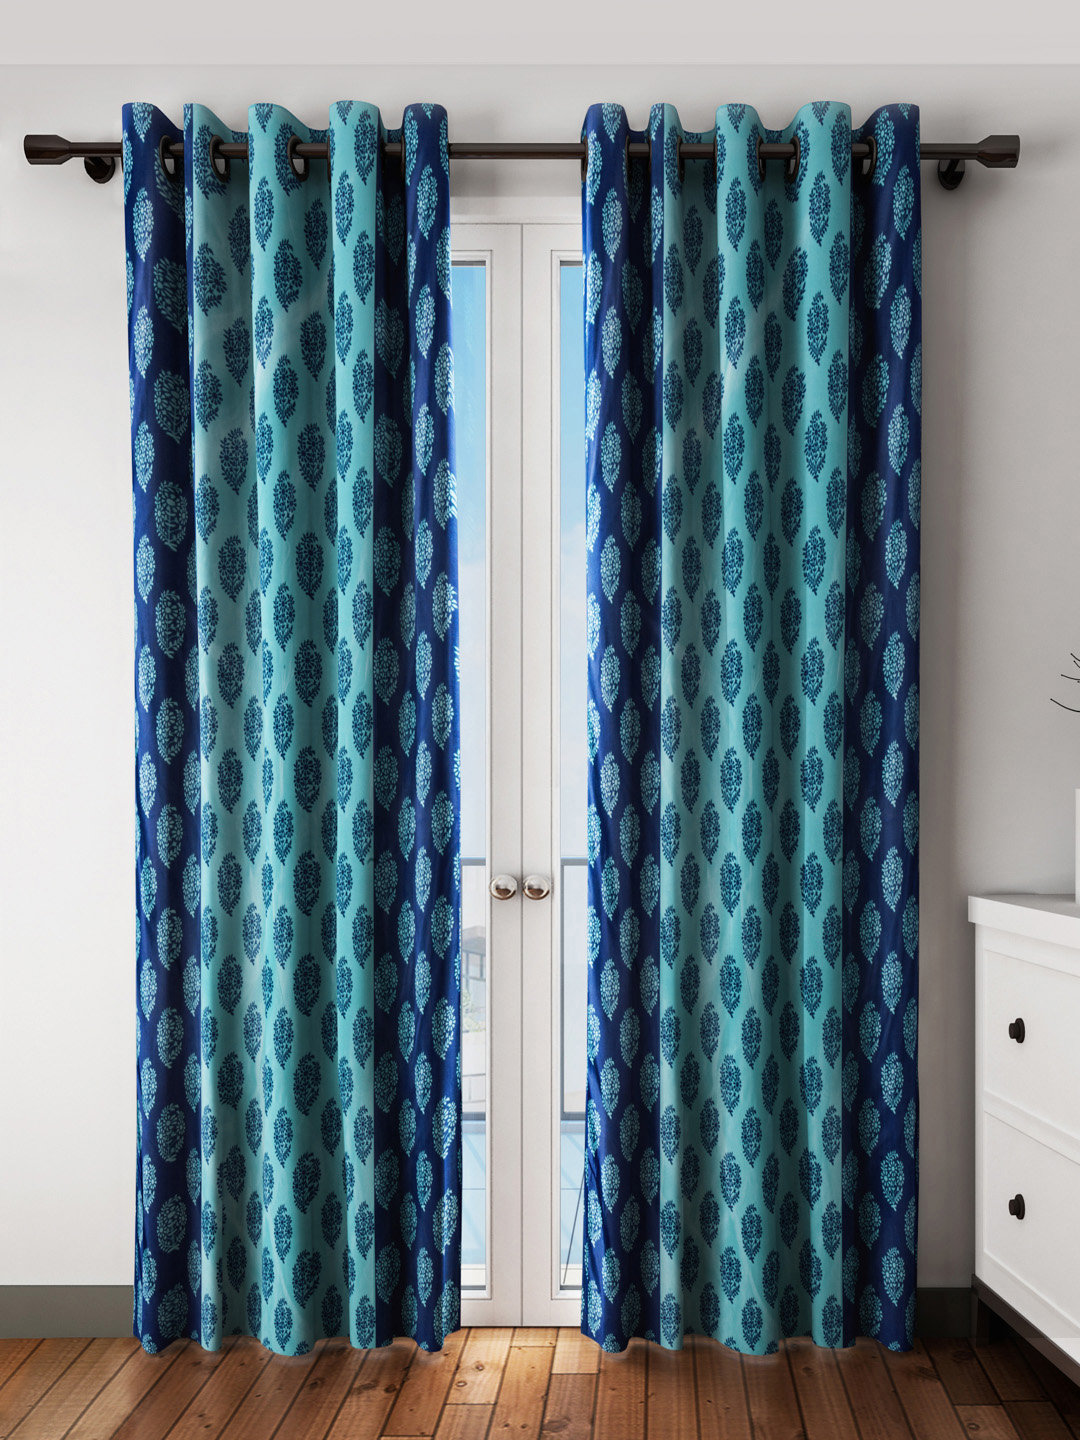 Freezer Plastic Curtains Strip Freightliner Cascadia Cab French Country Curtain Ideas